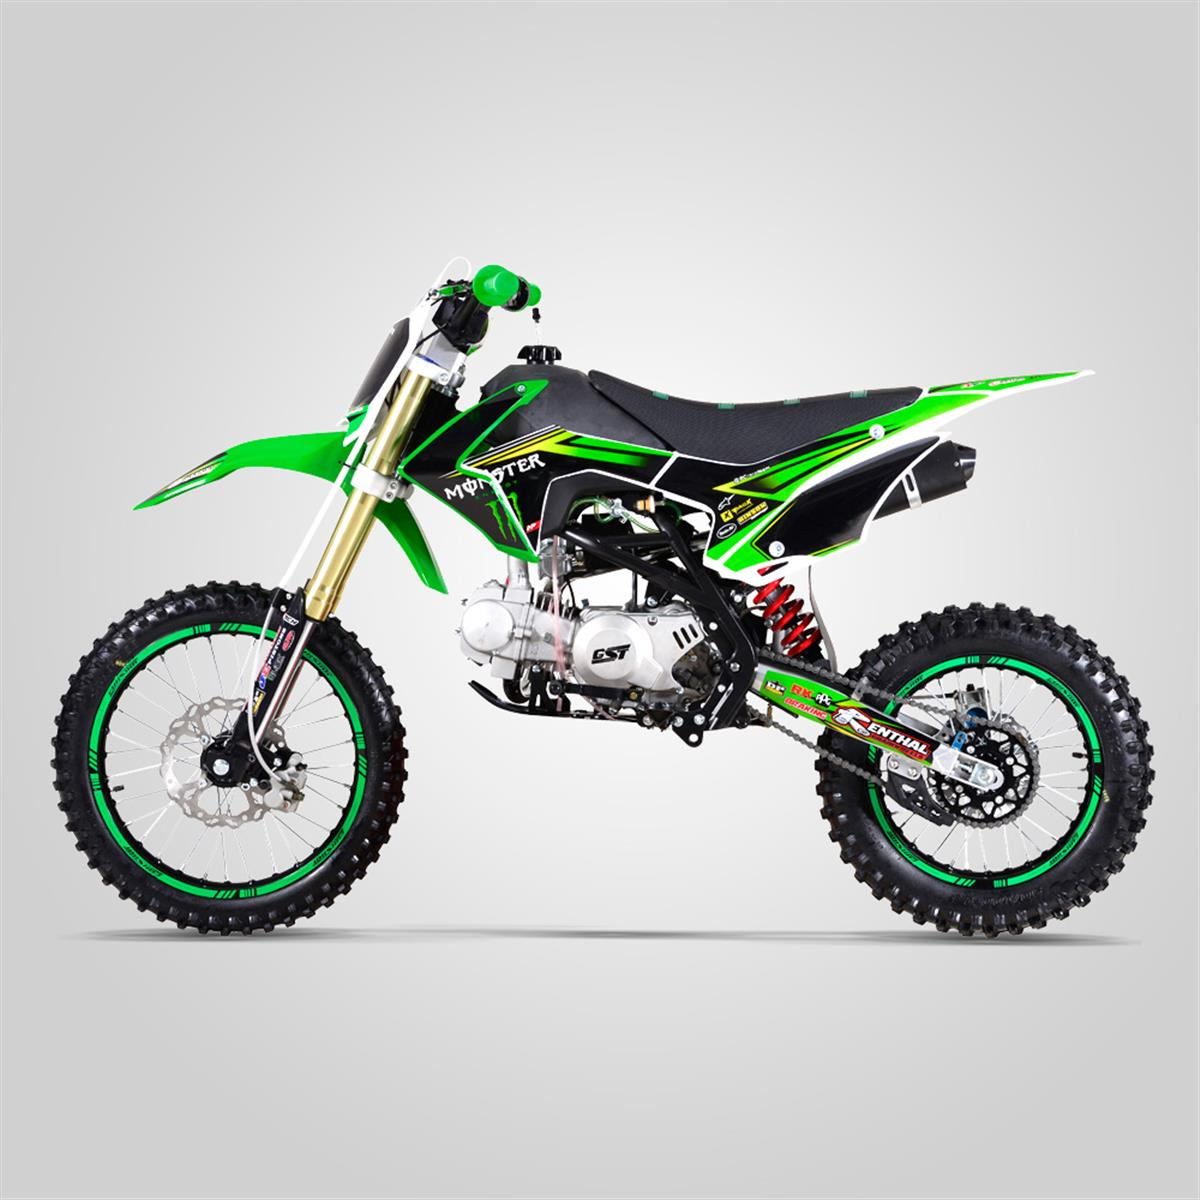 dirt bike 125cc gunshot fx 14 17 small mx smallmx. Black Bedroom Furniture Sets. Home Design Ideas